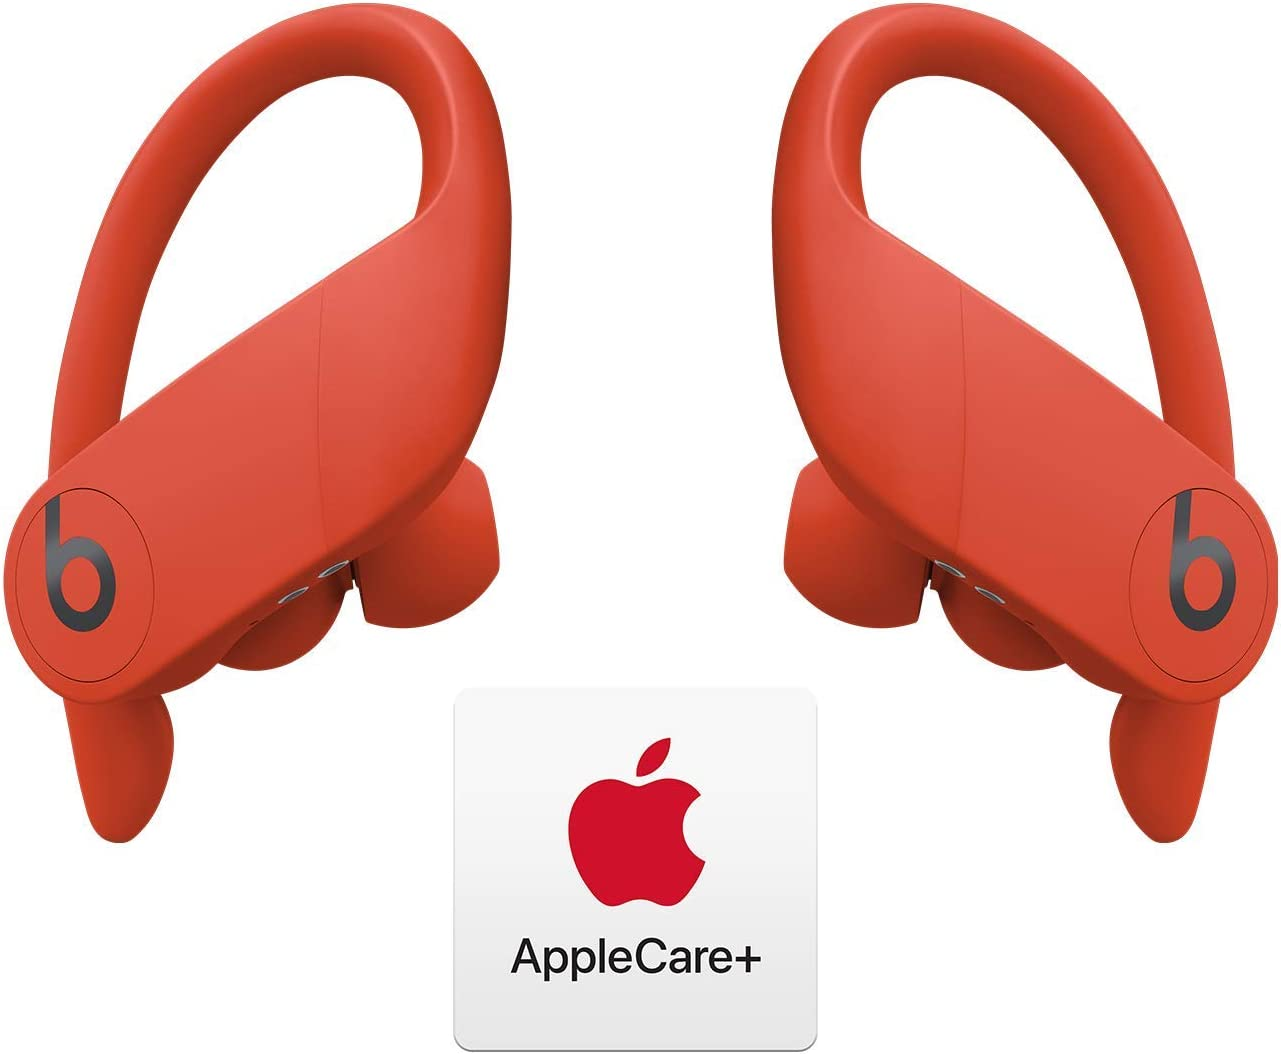 Powerbeats Pro Totally Wireless Earphones - Apple H1 Chip - Lava Red with AppleCare+ Bundle